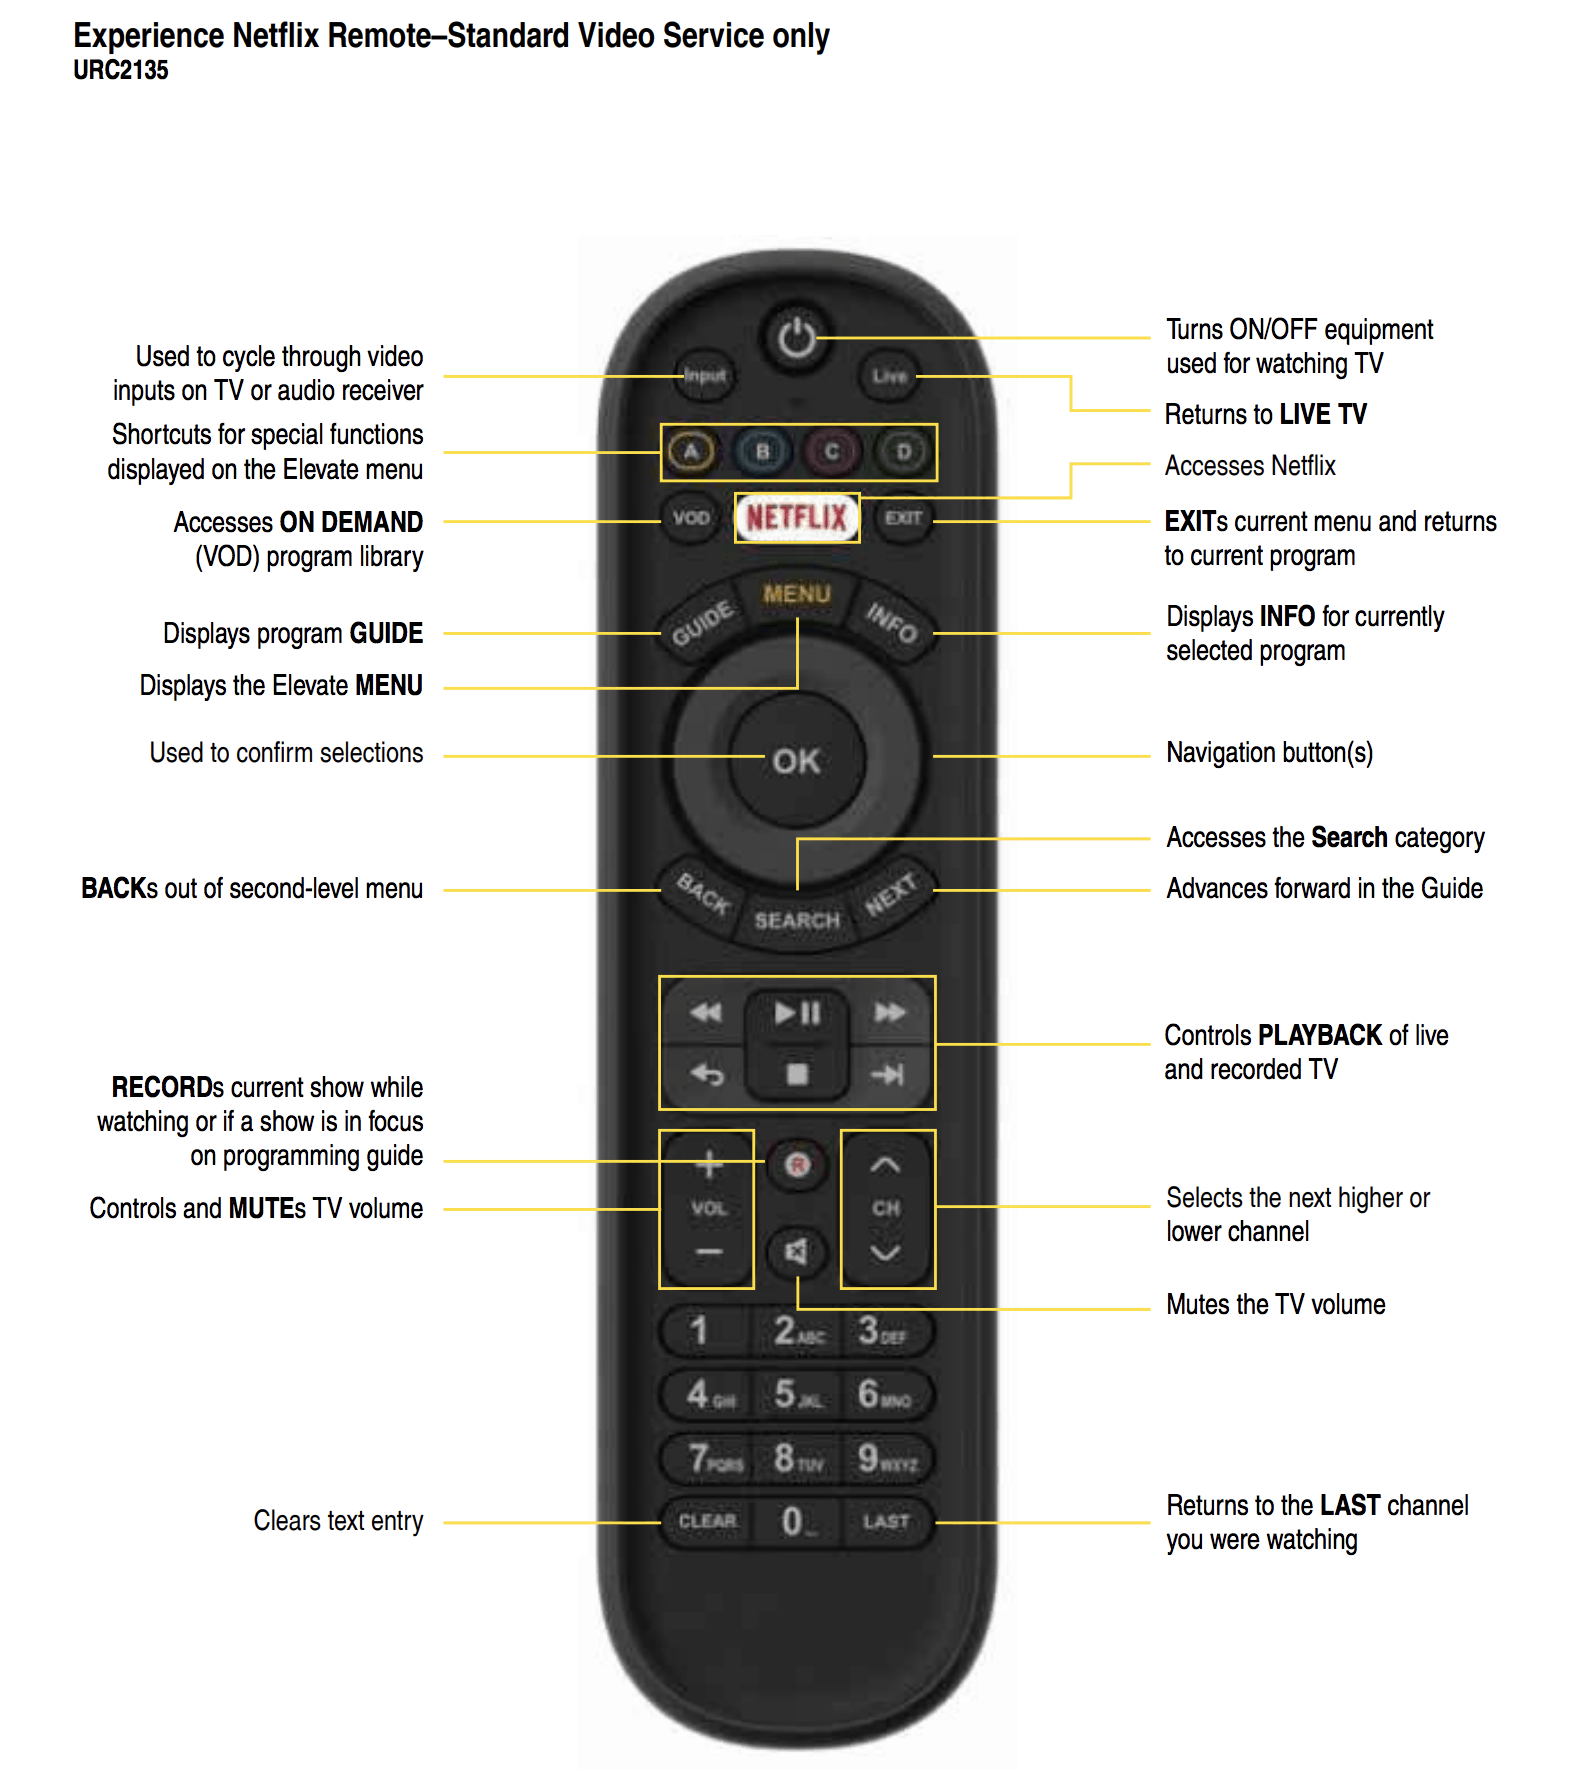 Experience Netflix Remote